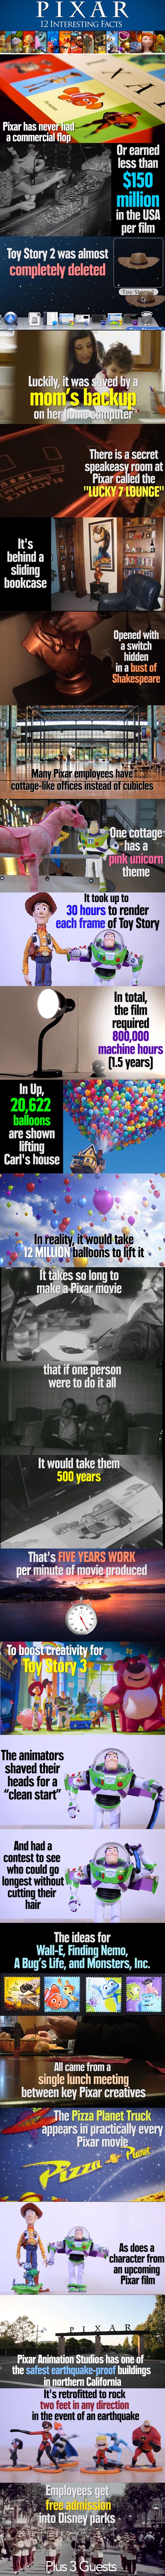 Vamers - FYI - 12 Interesting Facts about Disney's Pixar - FULL